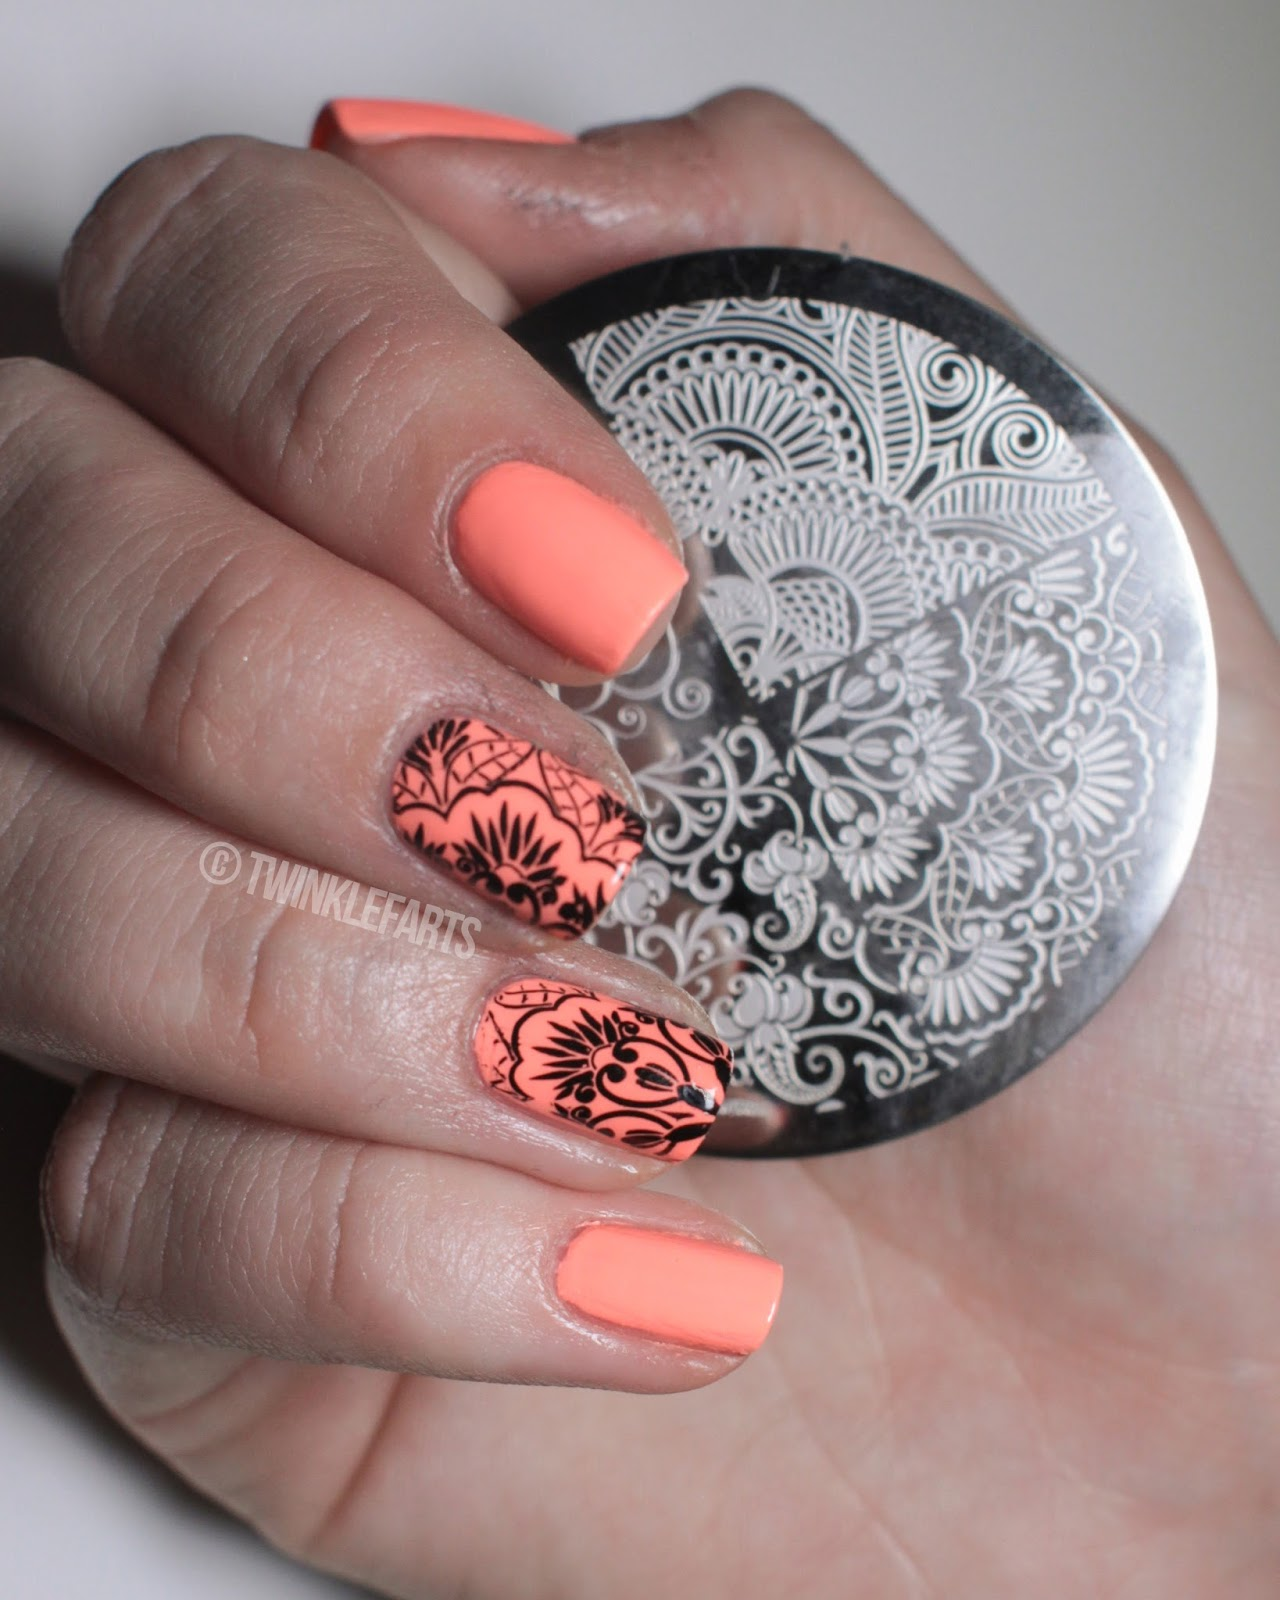 Twinklefarts So You Want To Try Nail Stamping Series Tools Of